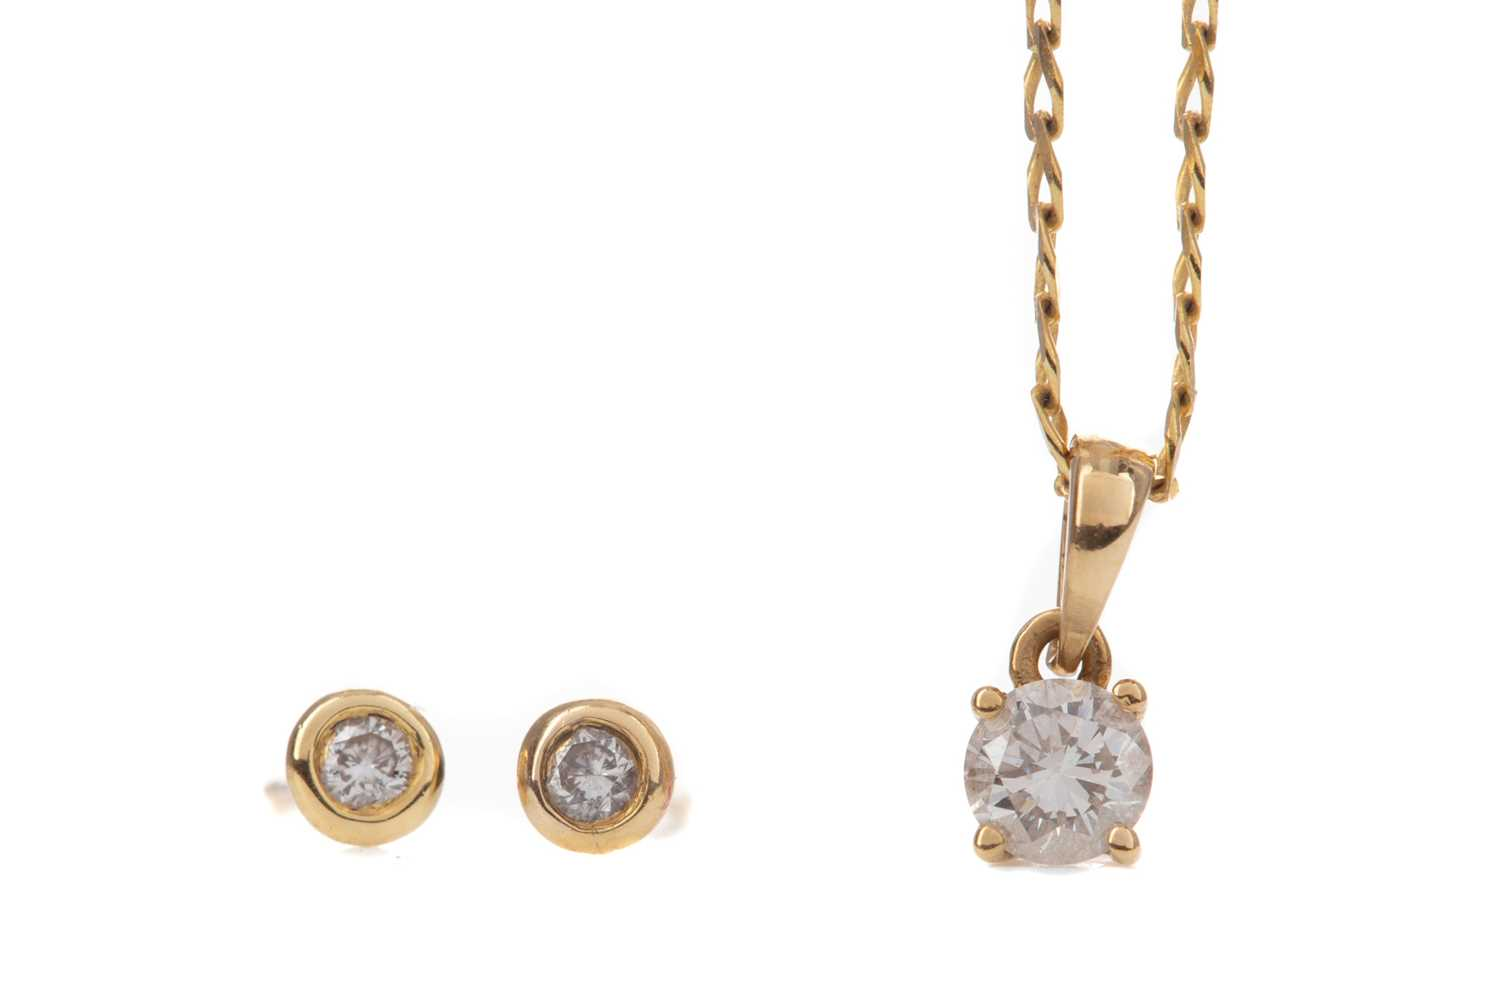 Lot 1336 - A PAIR OF DIAMOND EARRINGS AND A PENDANT